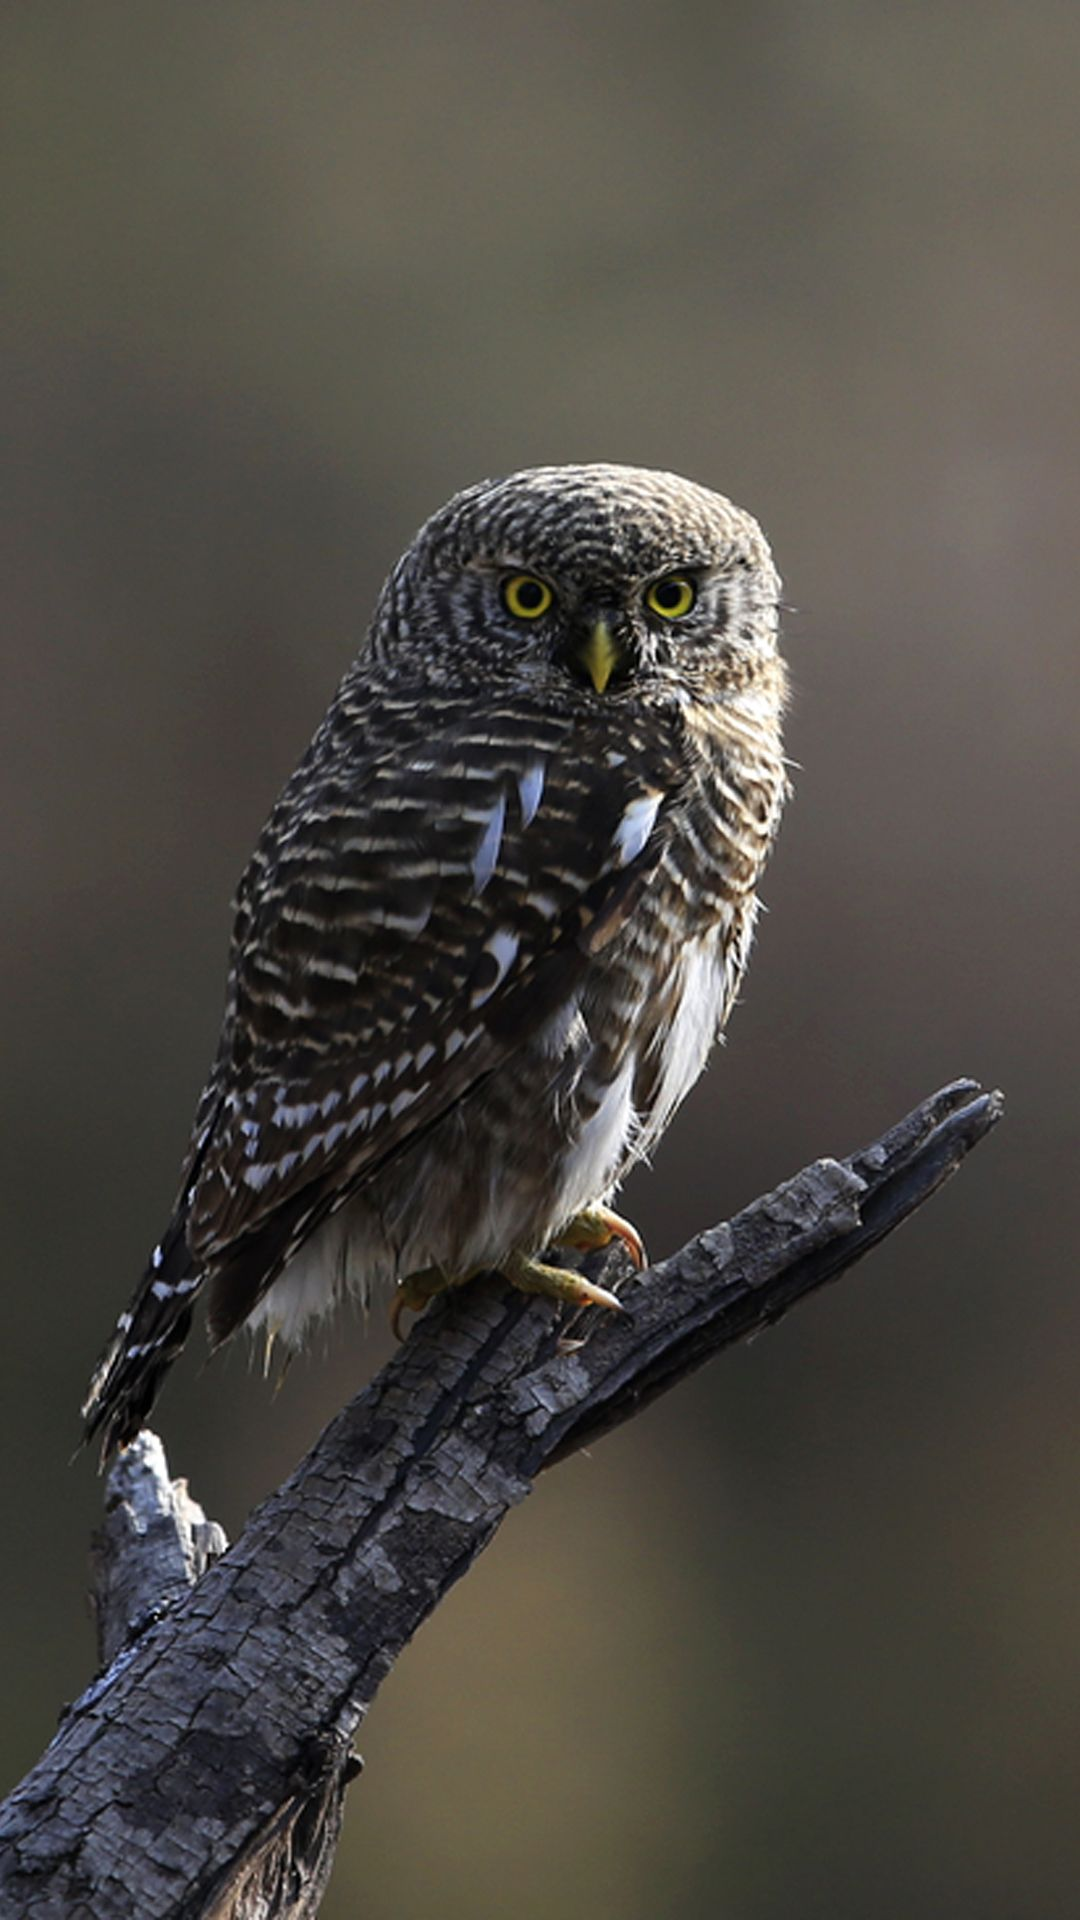 1080x1920 Interesting Young Owl - Wallpapers for iPhone